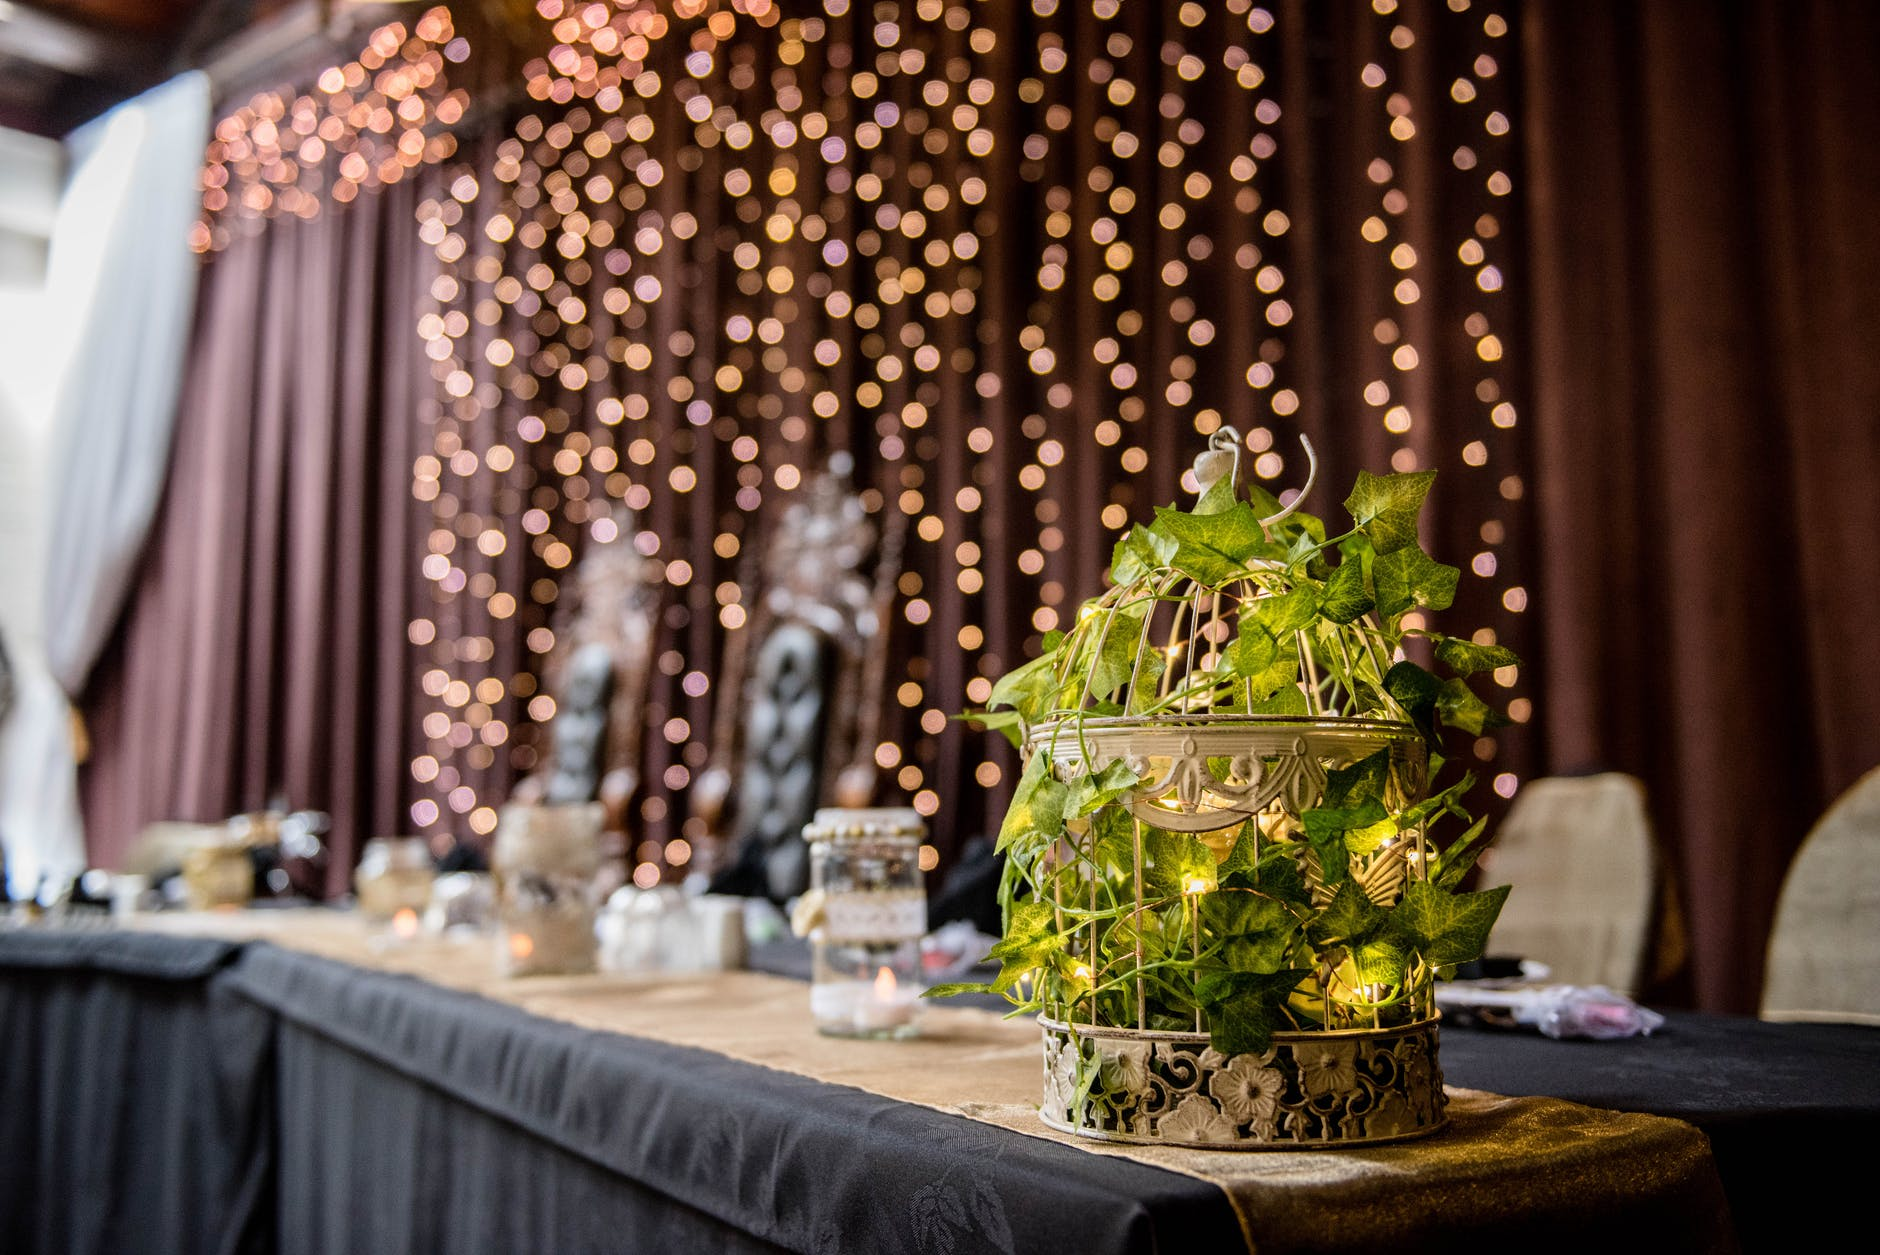 banquet table with candles against wall with garland decorations